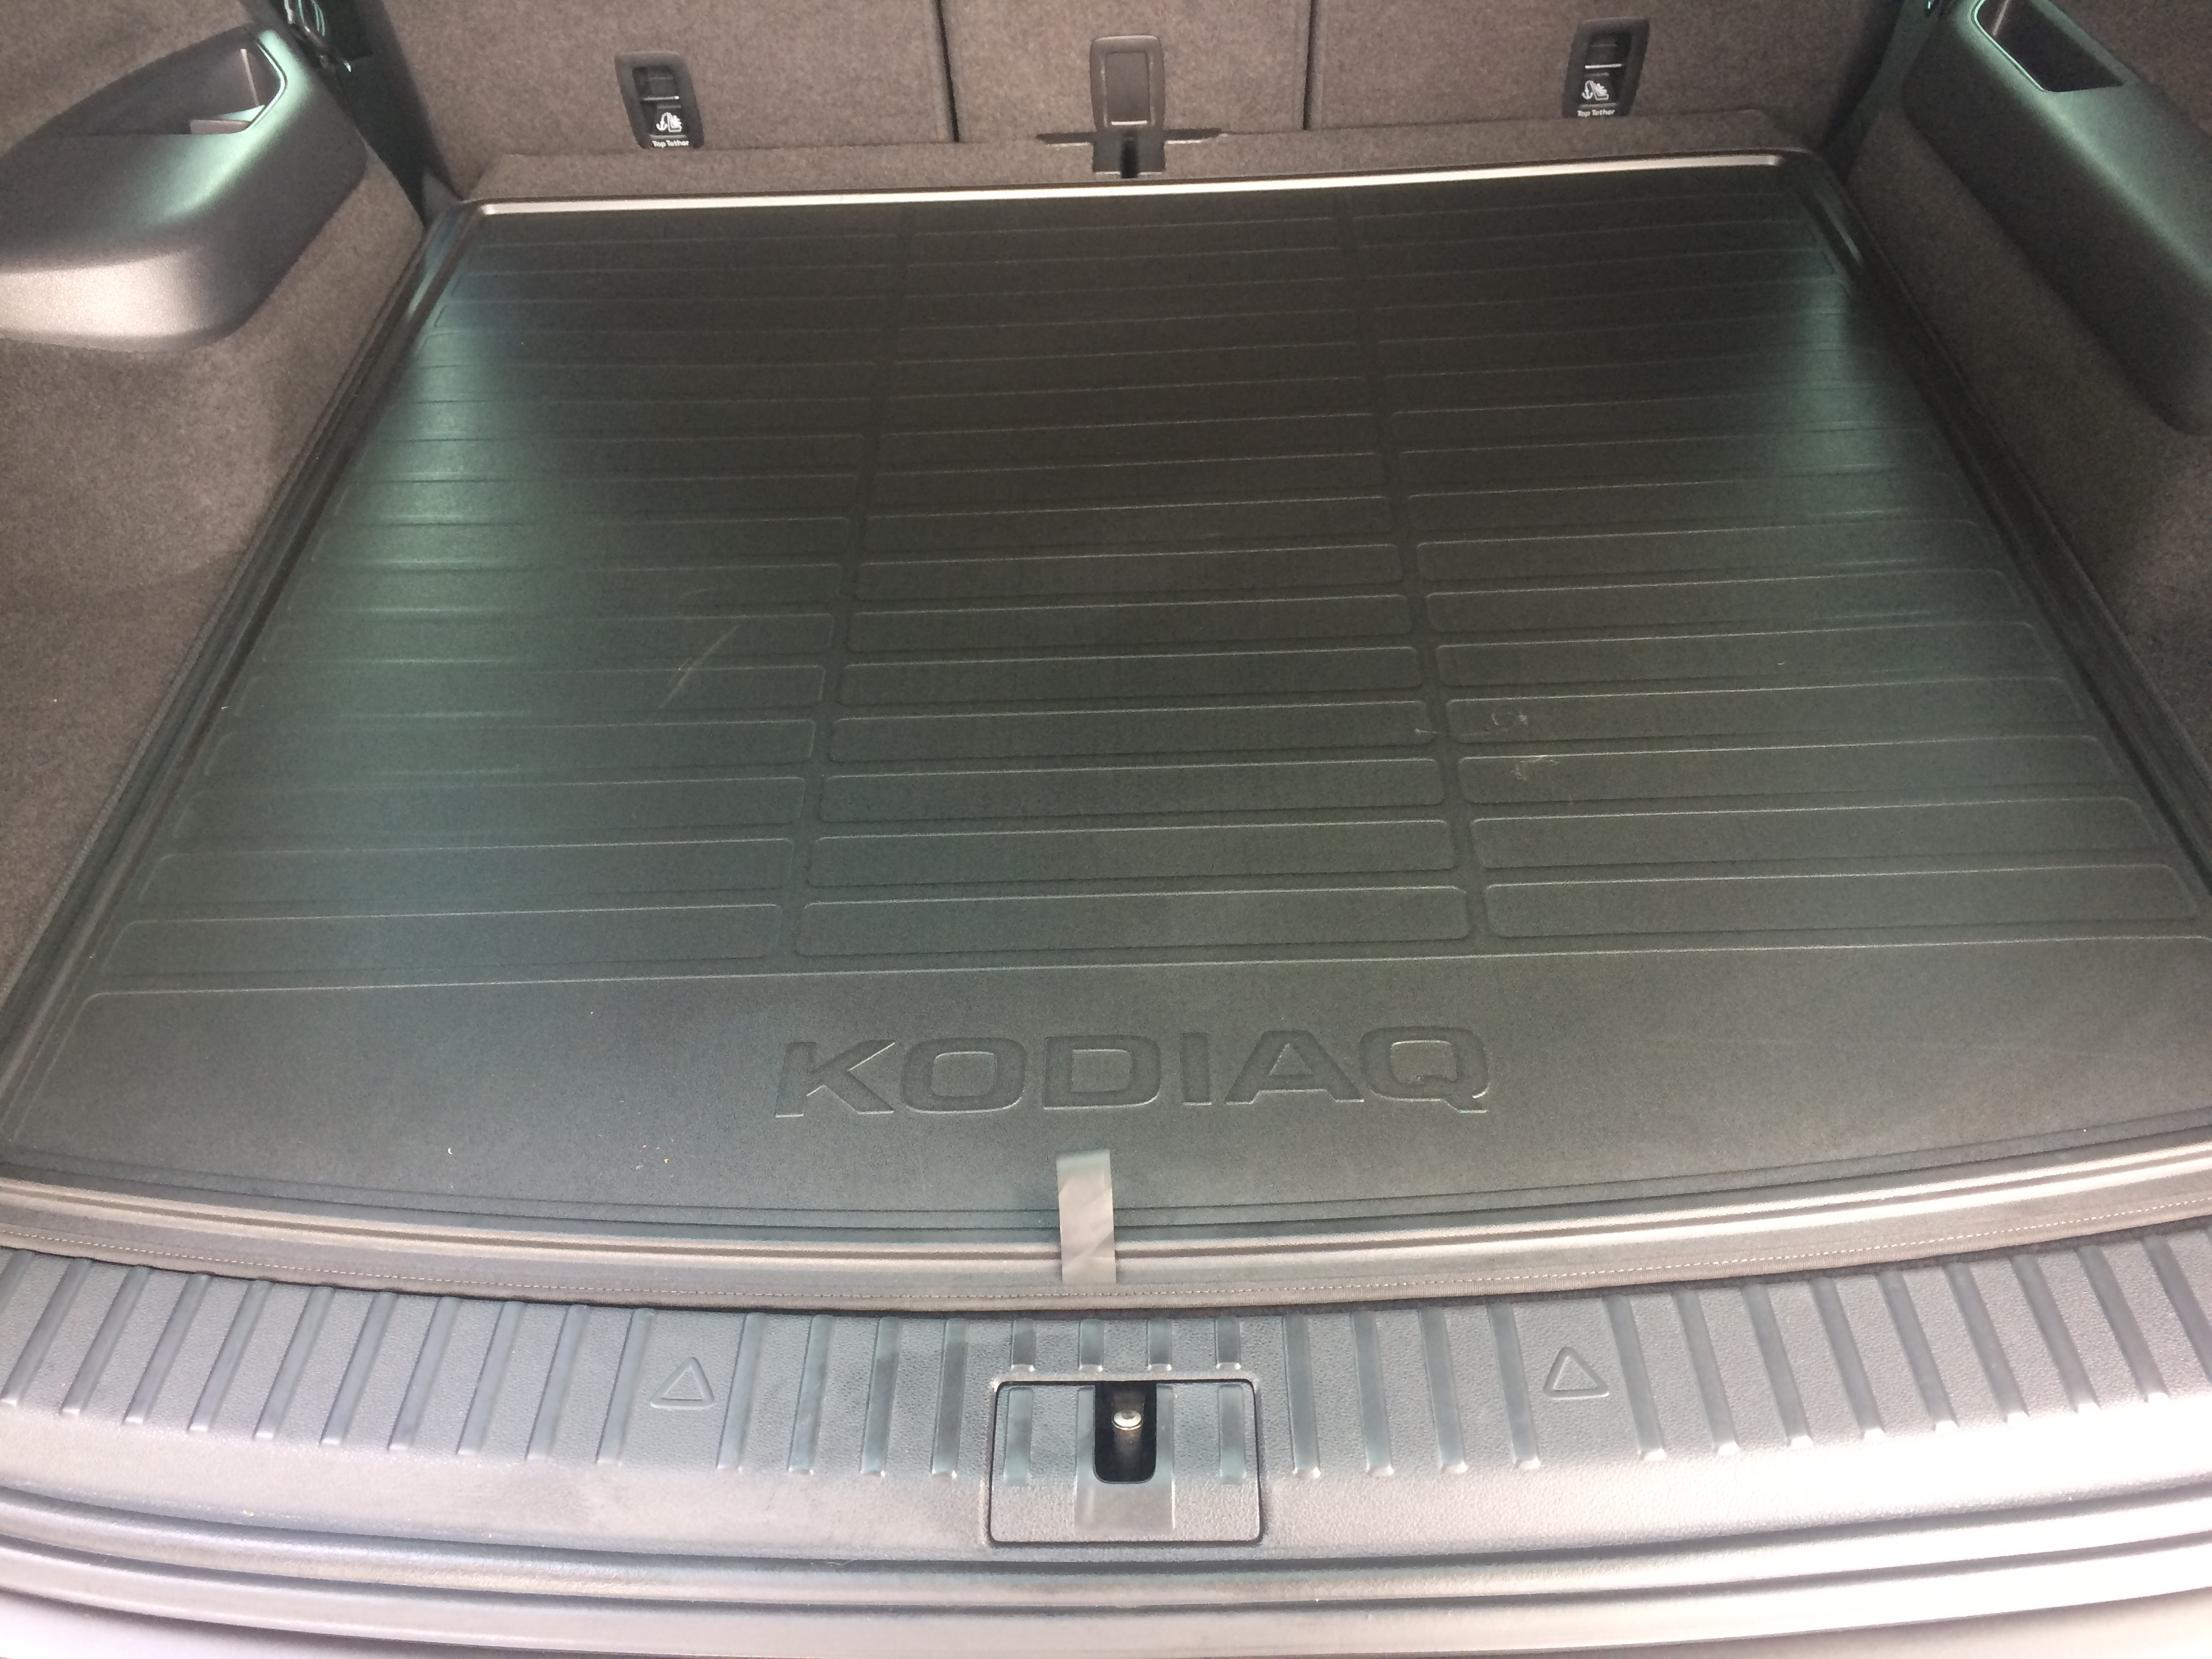 Kodiaq Reversible Boot Mat 3 Quot Too Small Skoda Kodiaq